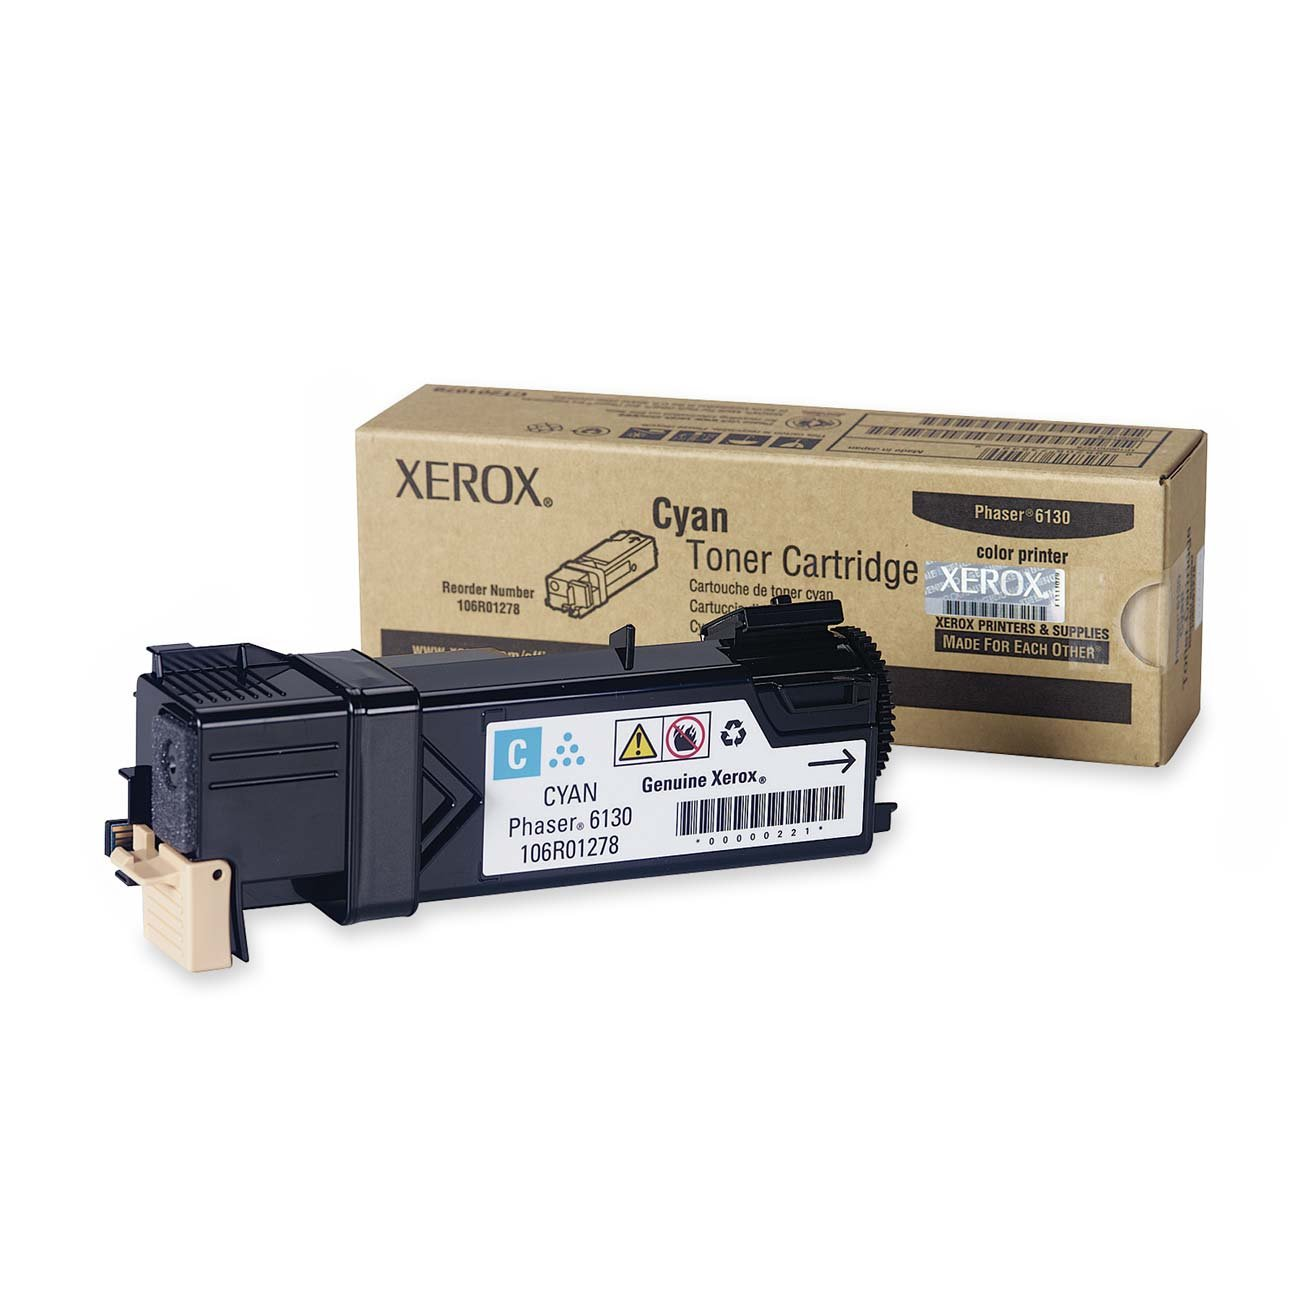 Xerox Phaser 6130 Cyan Standard Capacity Toner Cartridge (1,900 Pages) - 106R01278